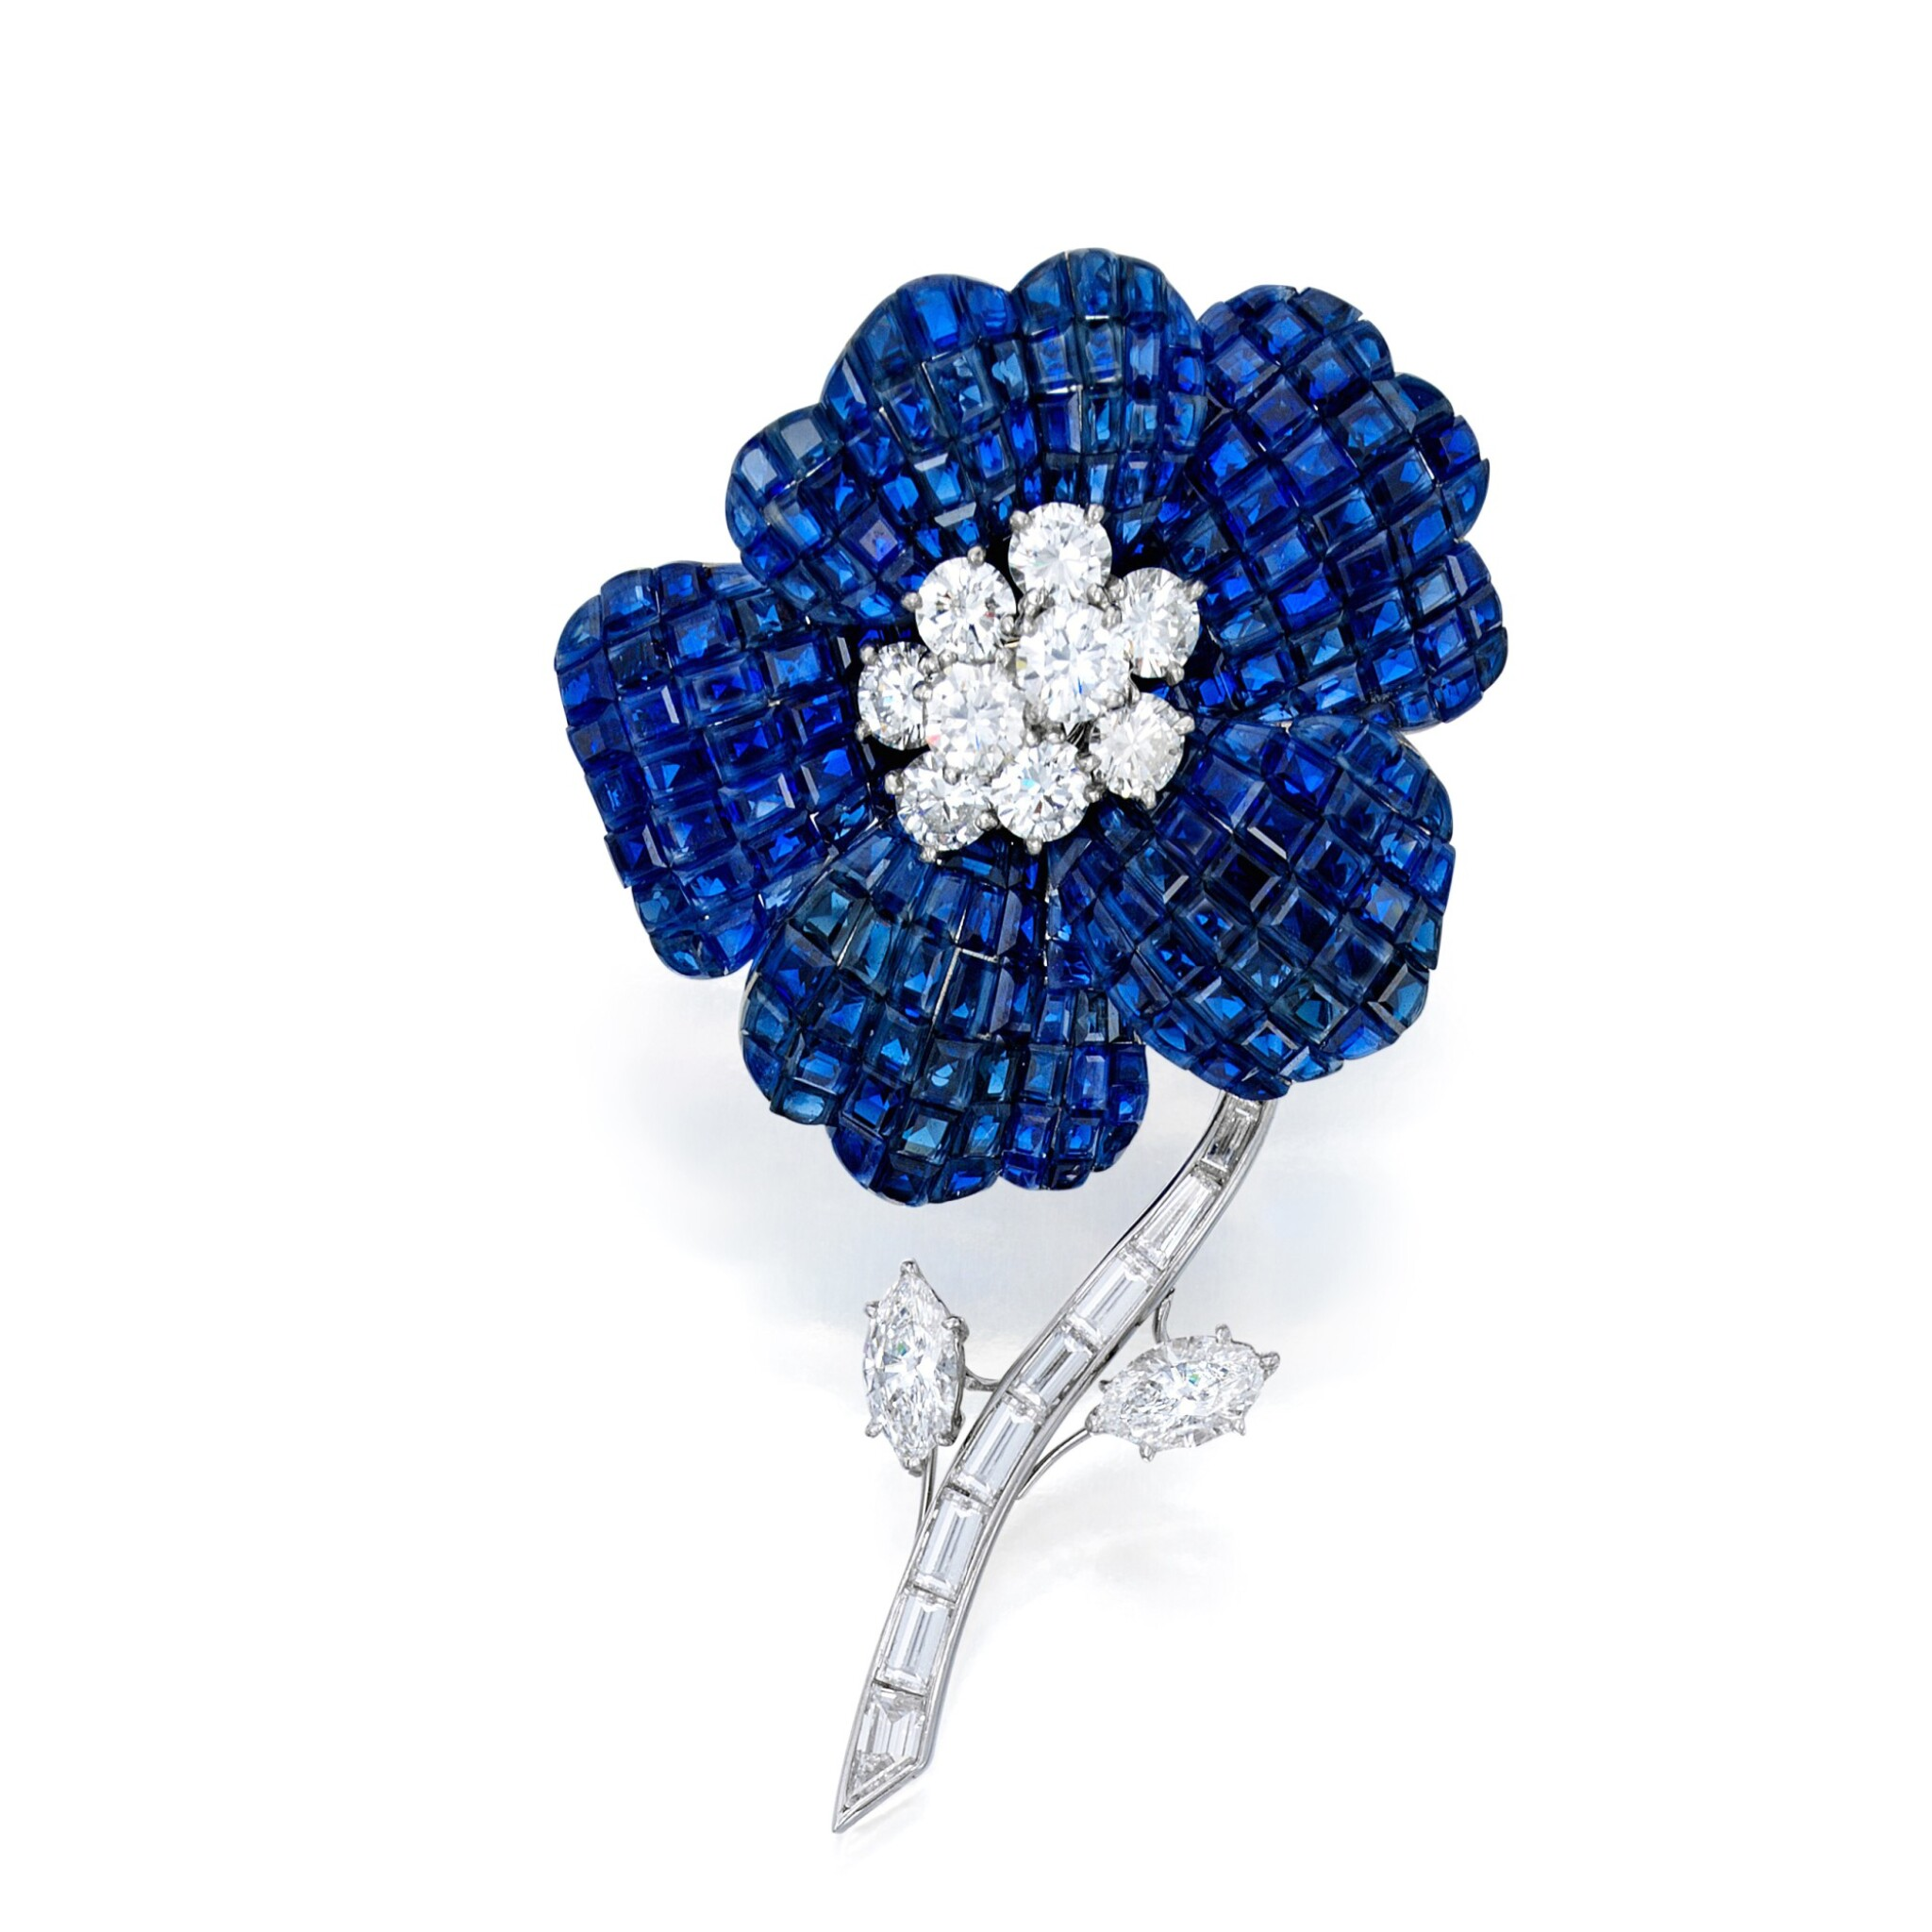 View full screen - View 1 of Lot 75. Van Cleef & Arpels | Mystery-Set Sapphire and Diamond Brooch.